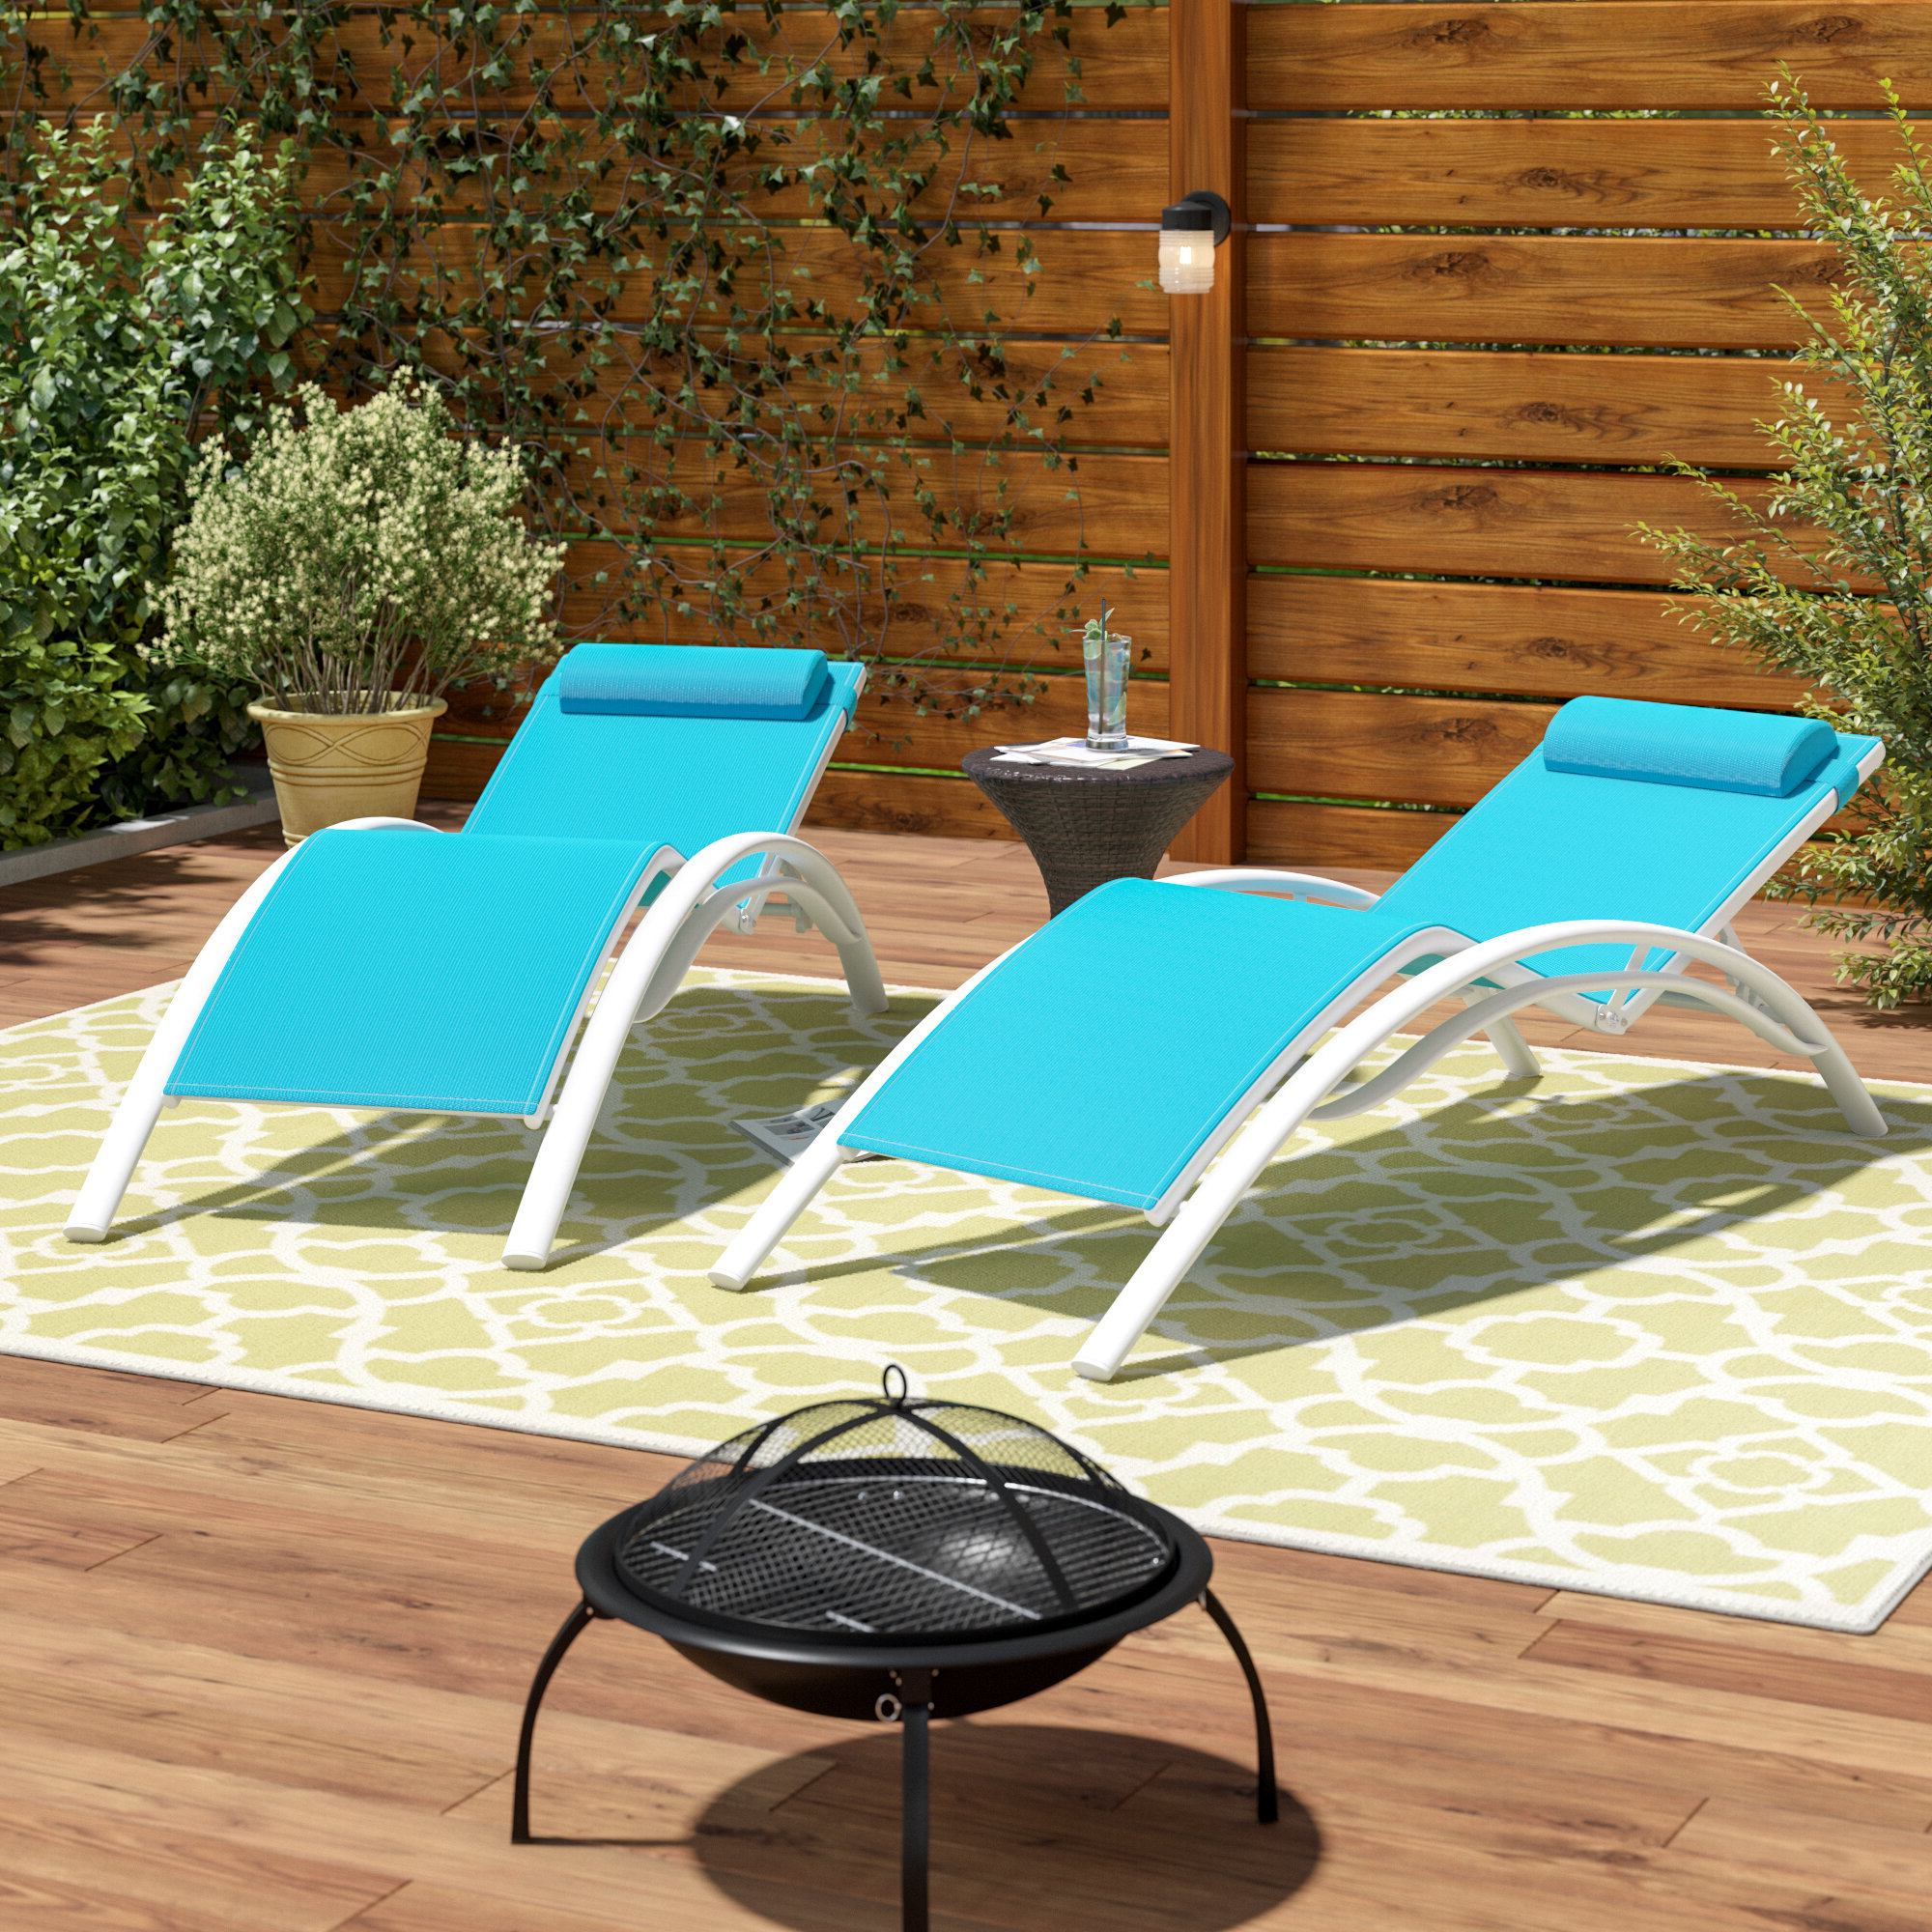 Outdoor Aluminum Adjustable Chaise Lounges With Recent Kozylounge Elegant Patio Reclining Adjustable Chaise Lounge Aluminum And Pvc Coated Polyester Sunbathing Chair For All Weather With Headrest (2 Pack, (Gallery 13 of 25)